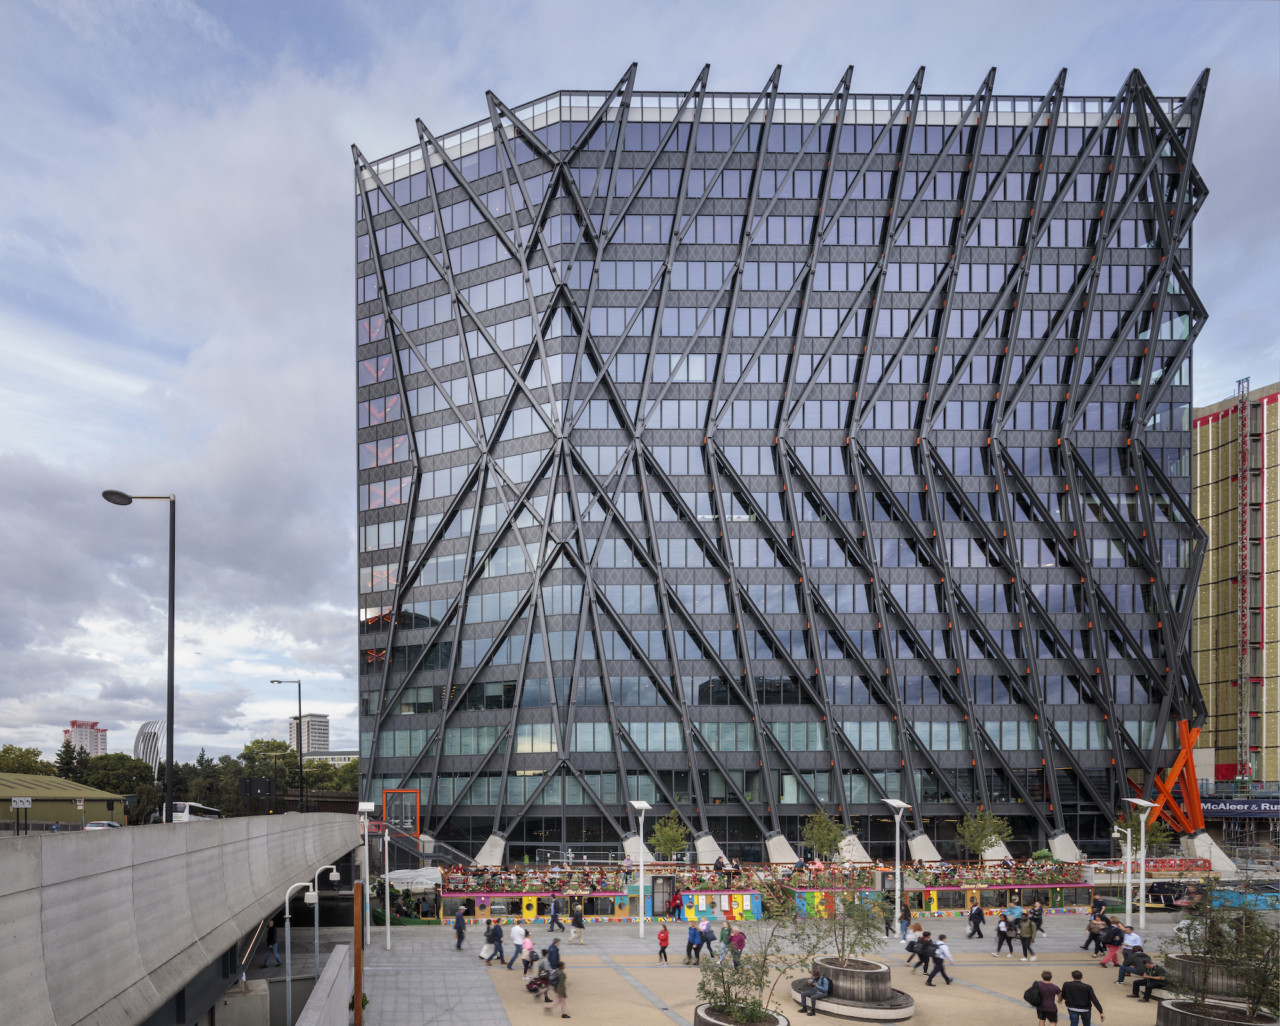 Exterior of the Brunel Building, a glass skyscraper covered in steel exoskeleton